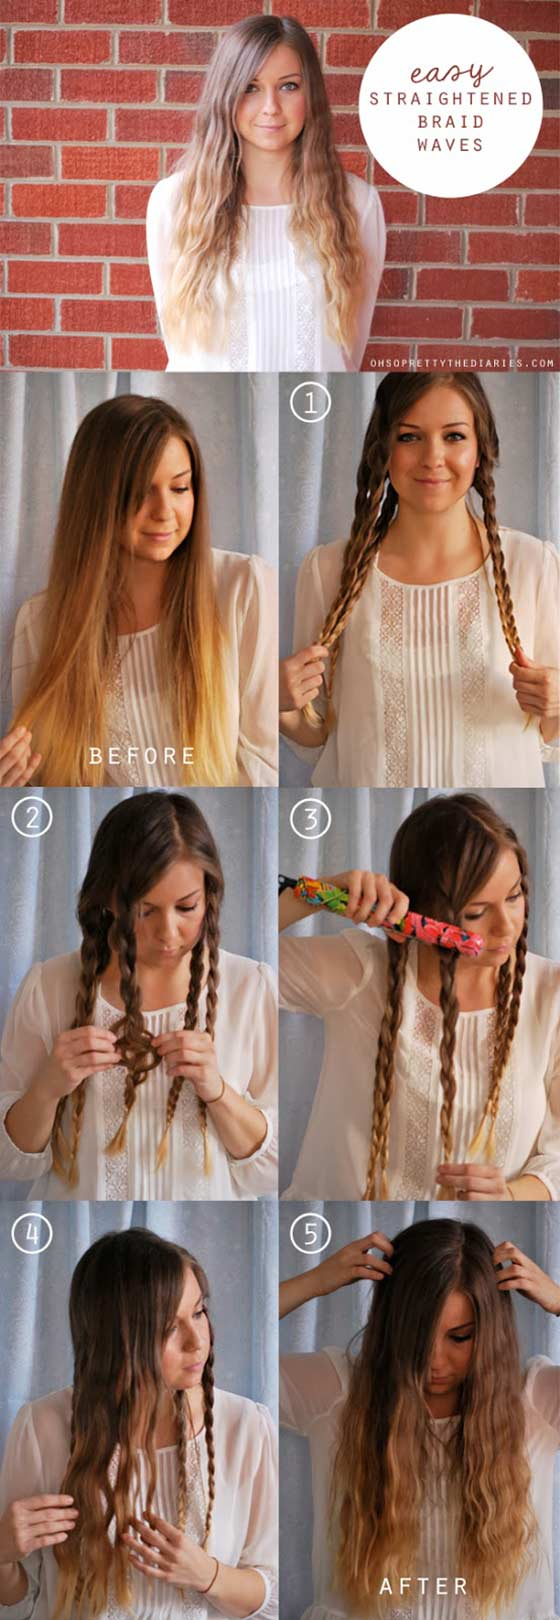 The-Straightened-Braids-Technique